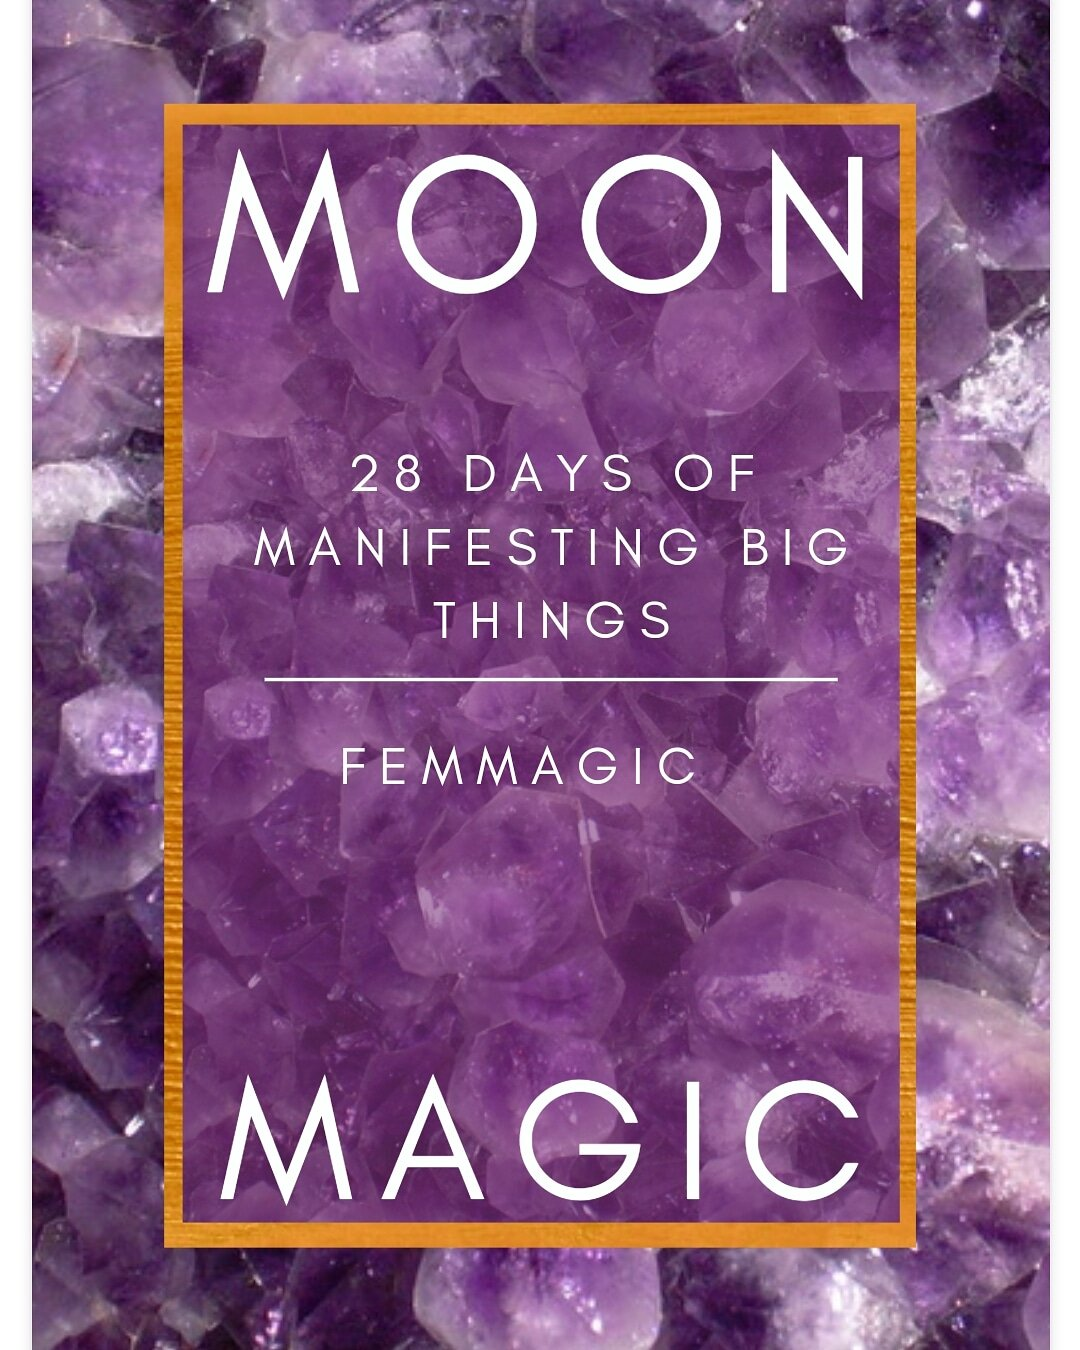 MOON MAGIC Manifesting Big Things - 28 day program